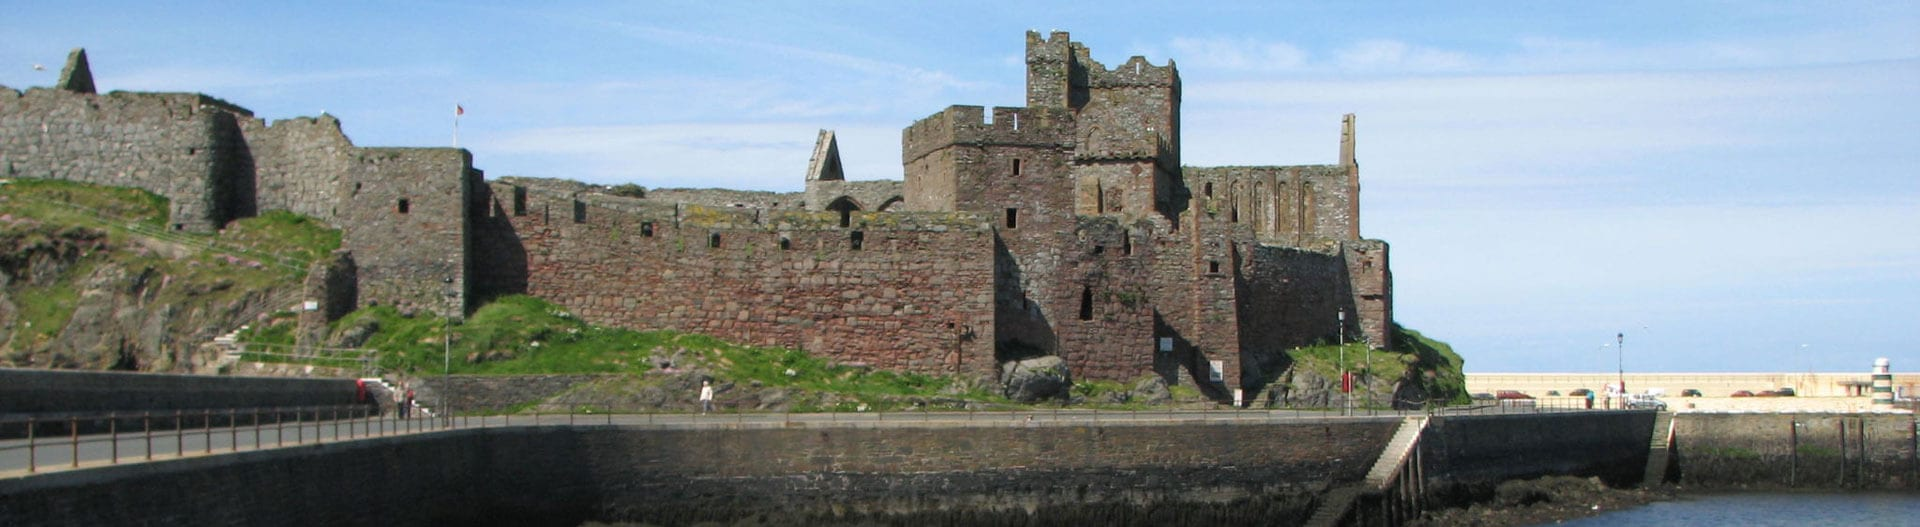 peel-castle-isle-of-man